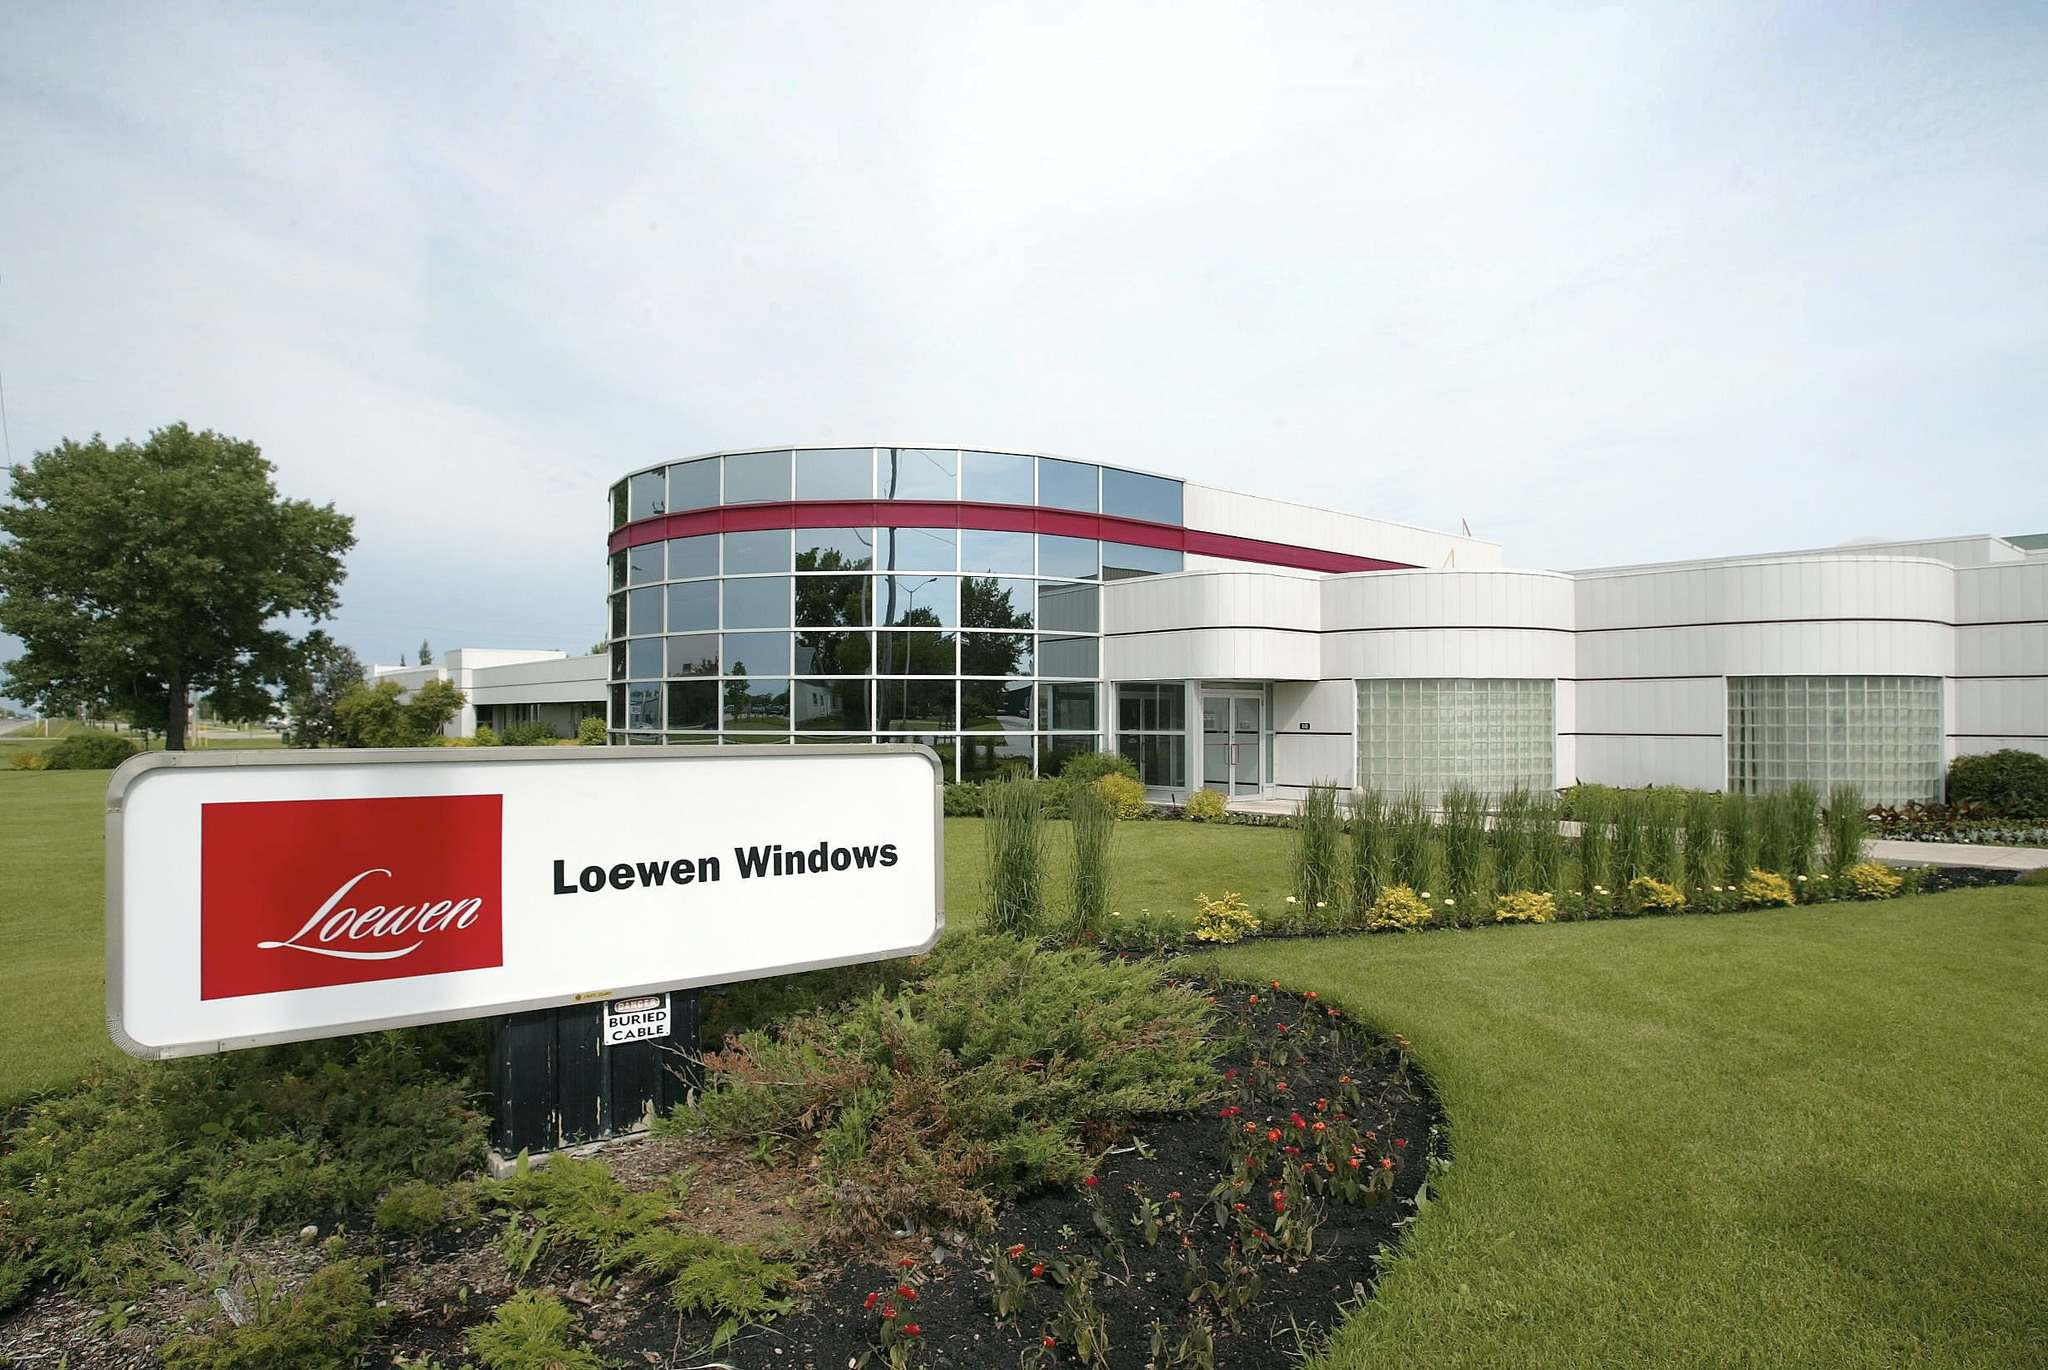 Loewen Windows Manufacturing in Steinbach has conducted several pop-up vaccination clinics.